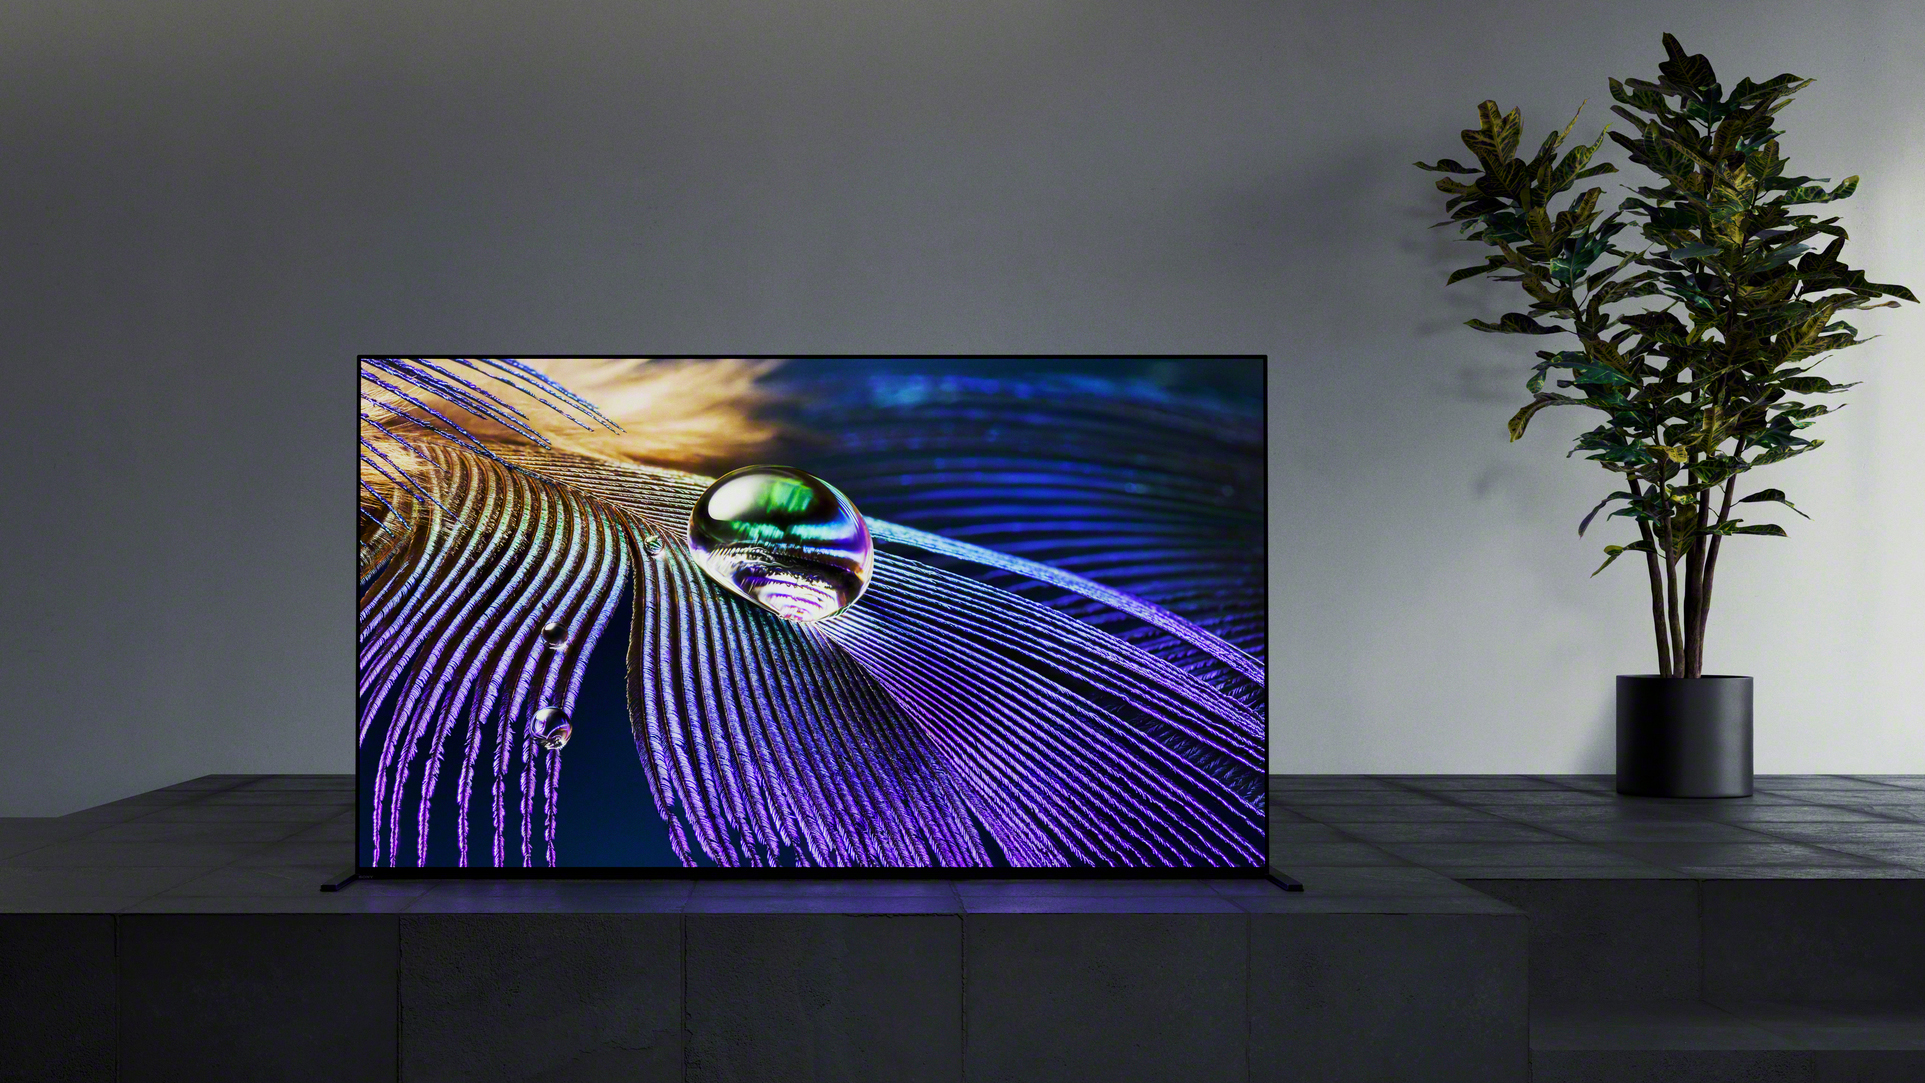 Sony 2021 TV Lineup — Sony Master Series A90J OLED TV